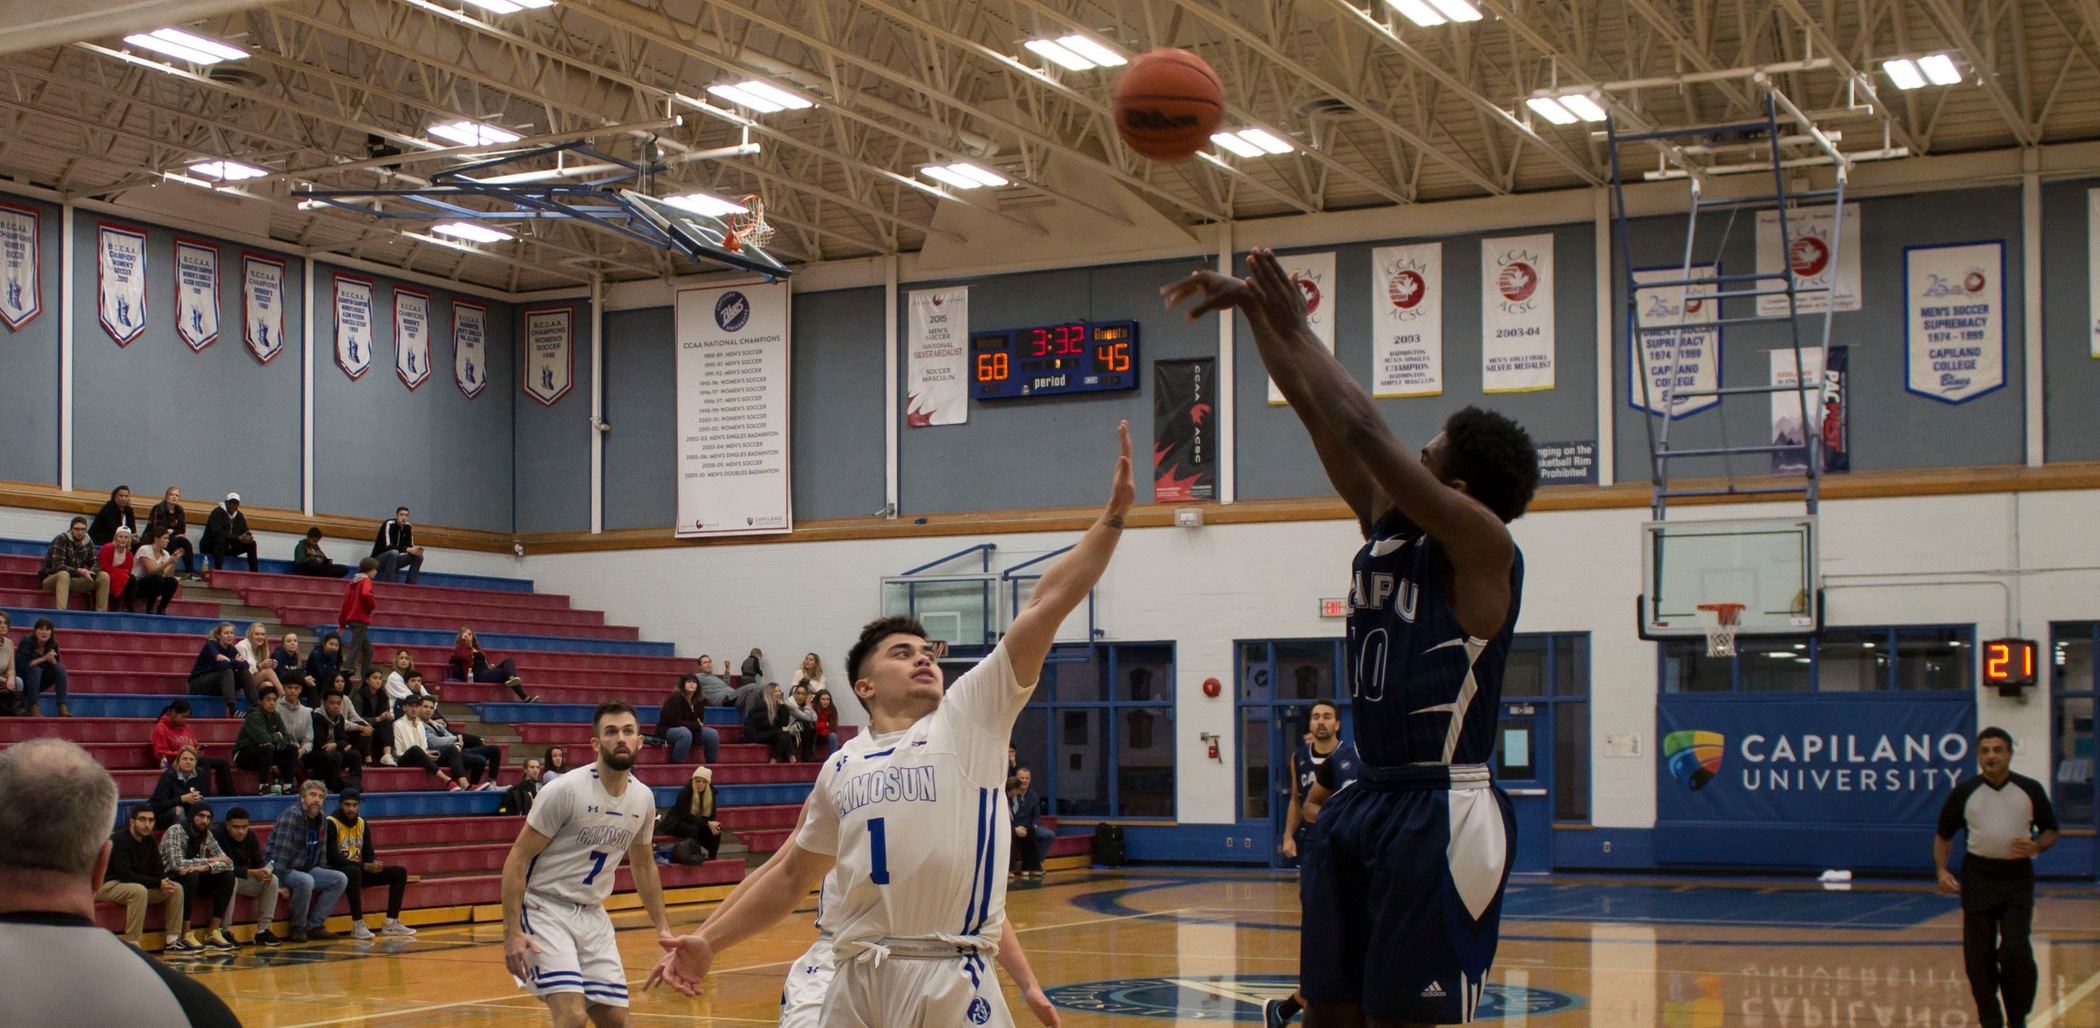 Second-year guard Kiante Knight rises for a shot in Capilano's 103-79 win over Camosun.